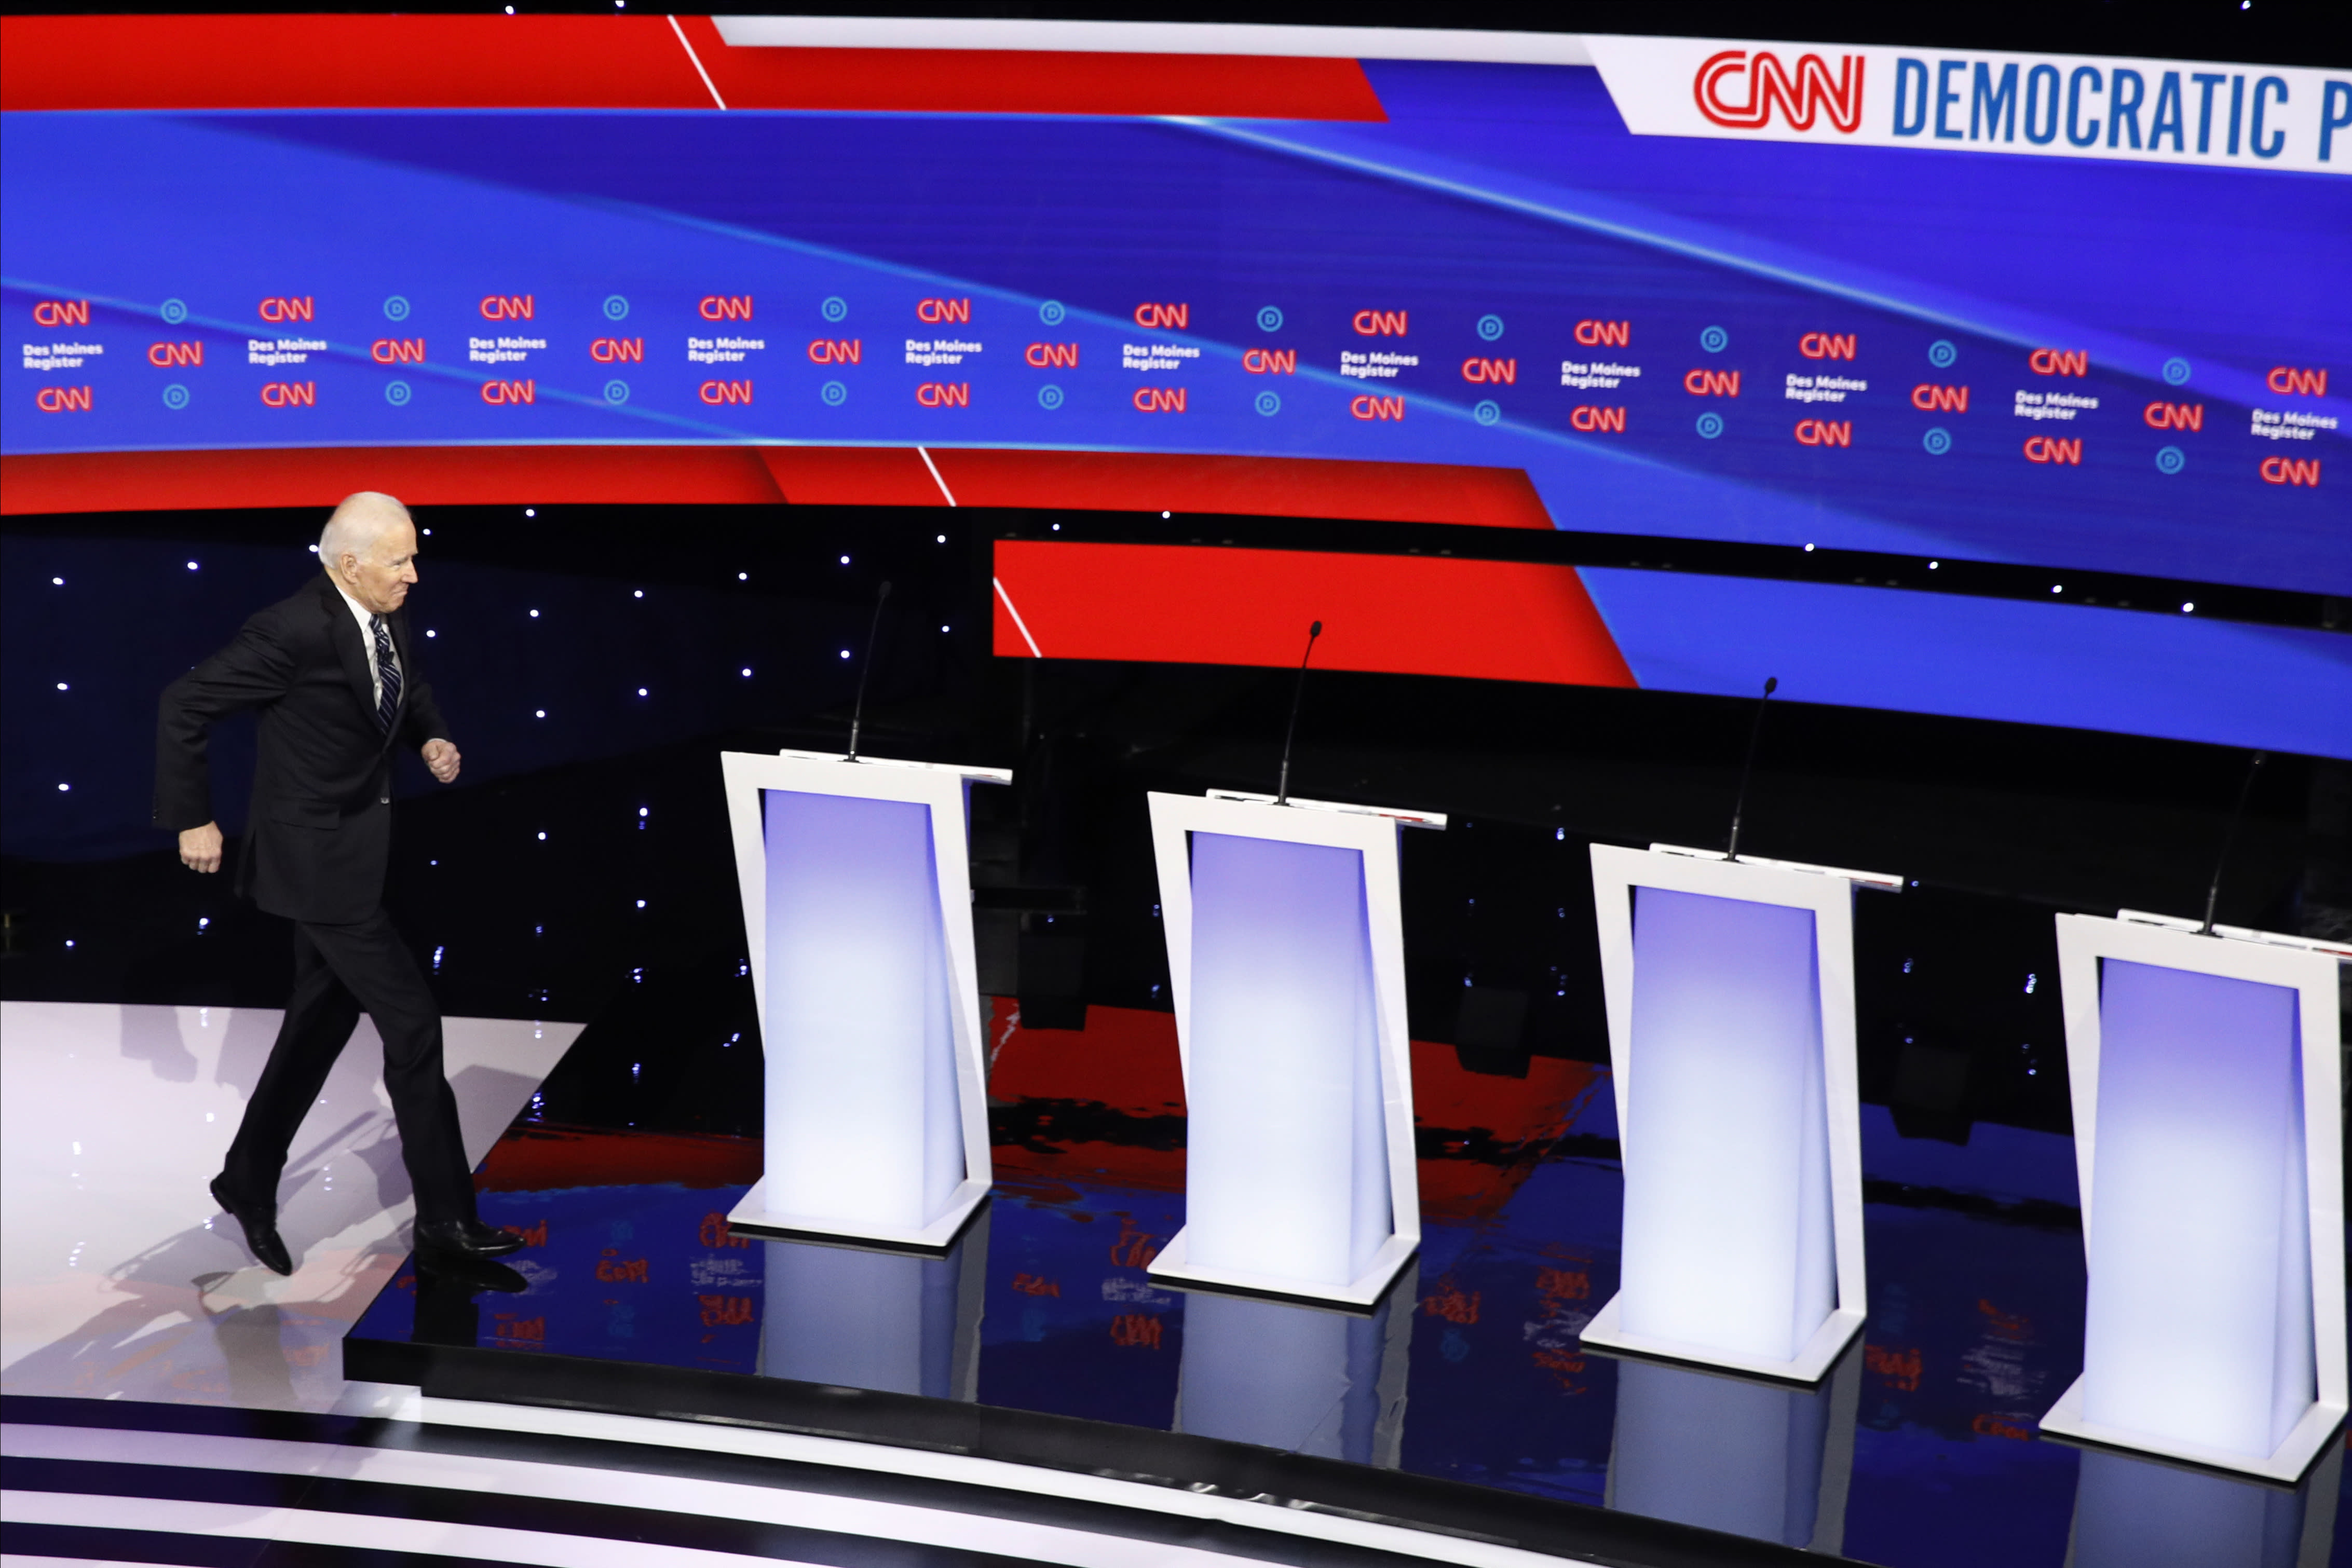 FILE - In this Jan. 14, 2020, file photo Democratic presidential candidates former Vice President Joe Biden, takes the stage before a Democratic presidential primary debate hosted by CNN and the Des Moines Register in Des Moines, Iowa. Biden has won the last few delegates he needed to clinch the Democratic nomination for president. (AP Photo/Patrick Semansky, File)